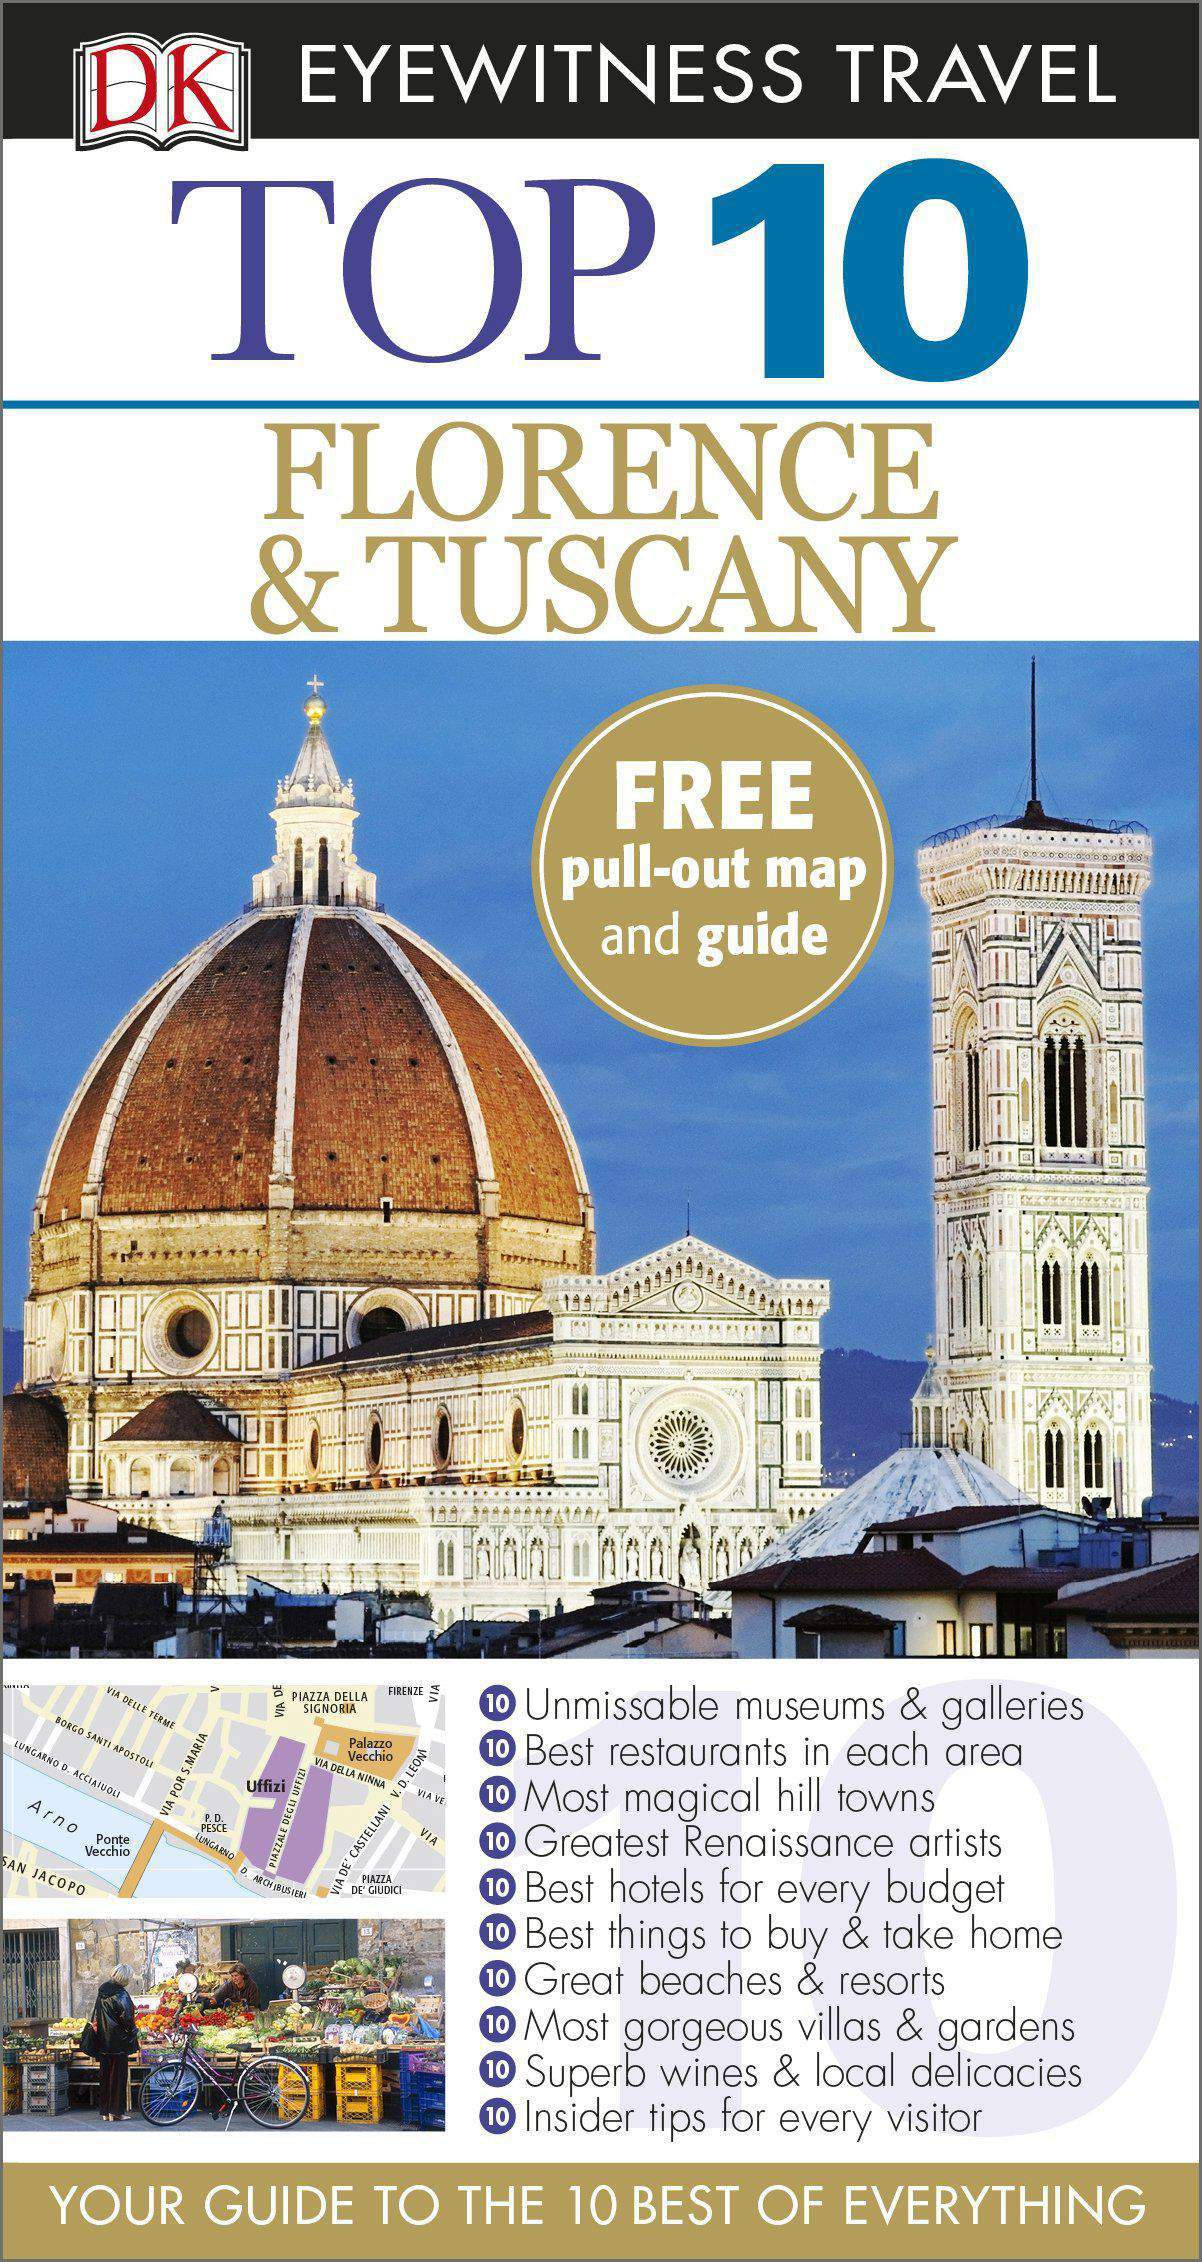 DK Eyewitness Top 10 Travel Guide Florence & Tuscany